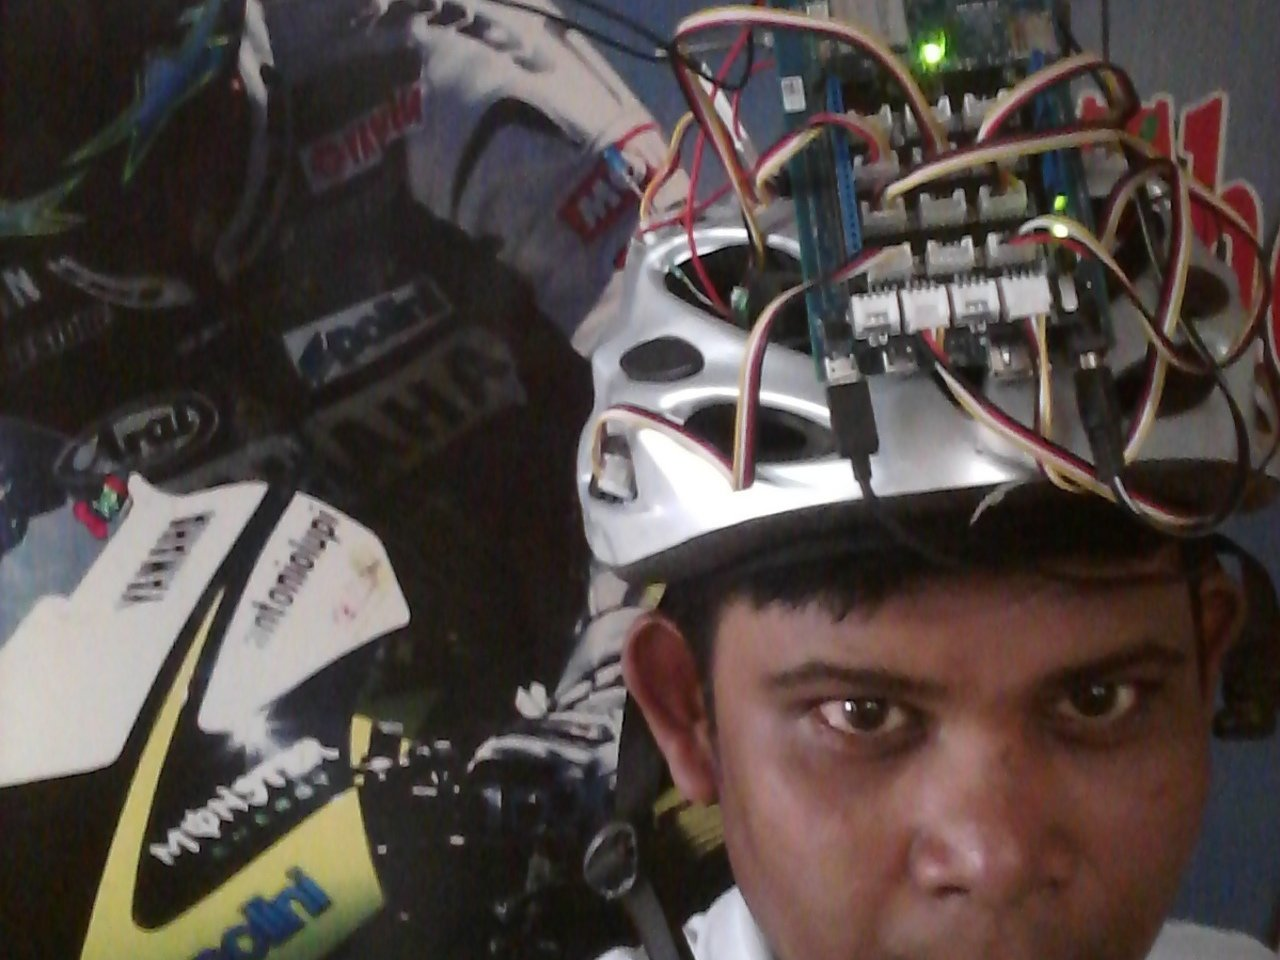 Cool Head: Temperature Controlled Fully Functional Helmet with Intel Edison